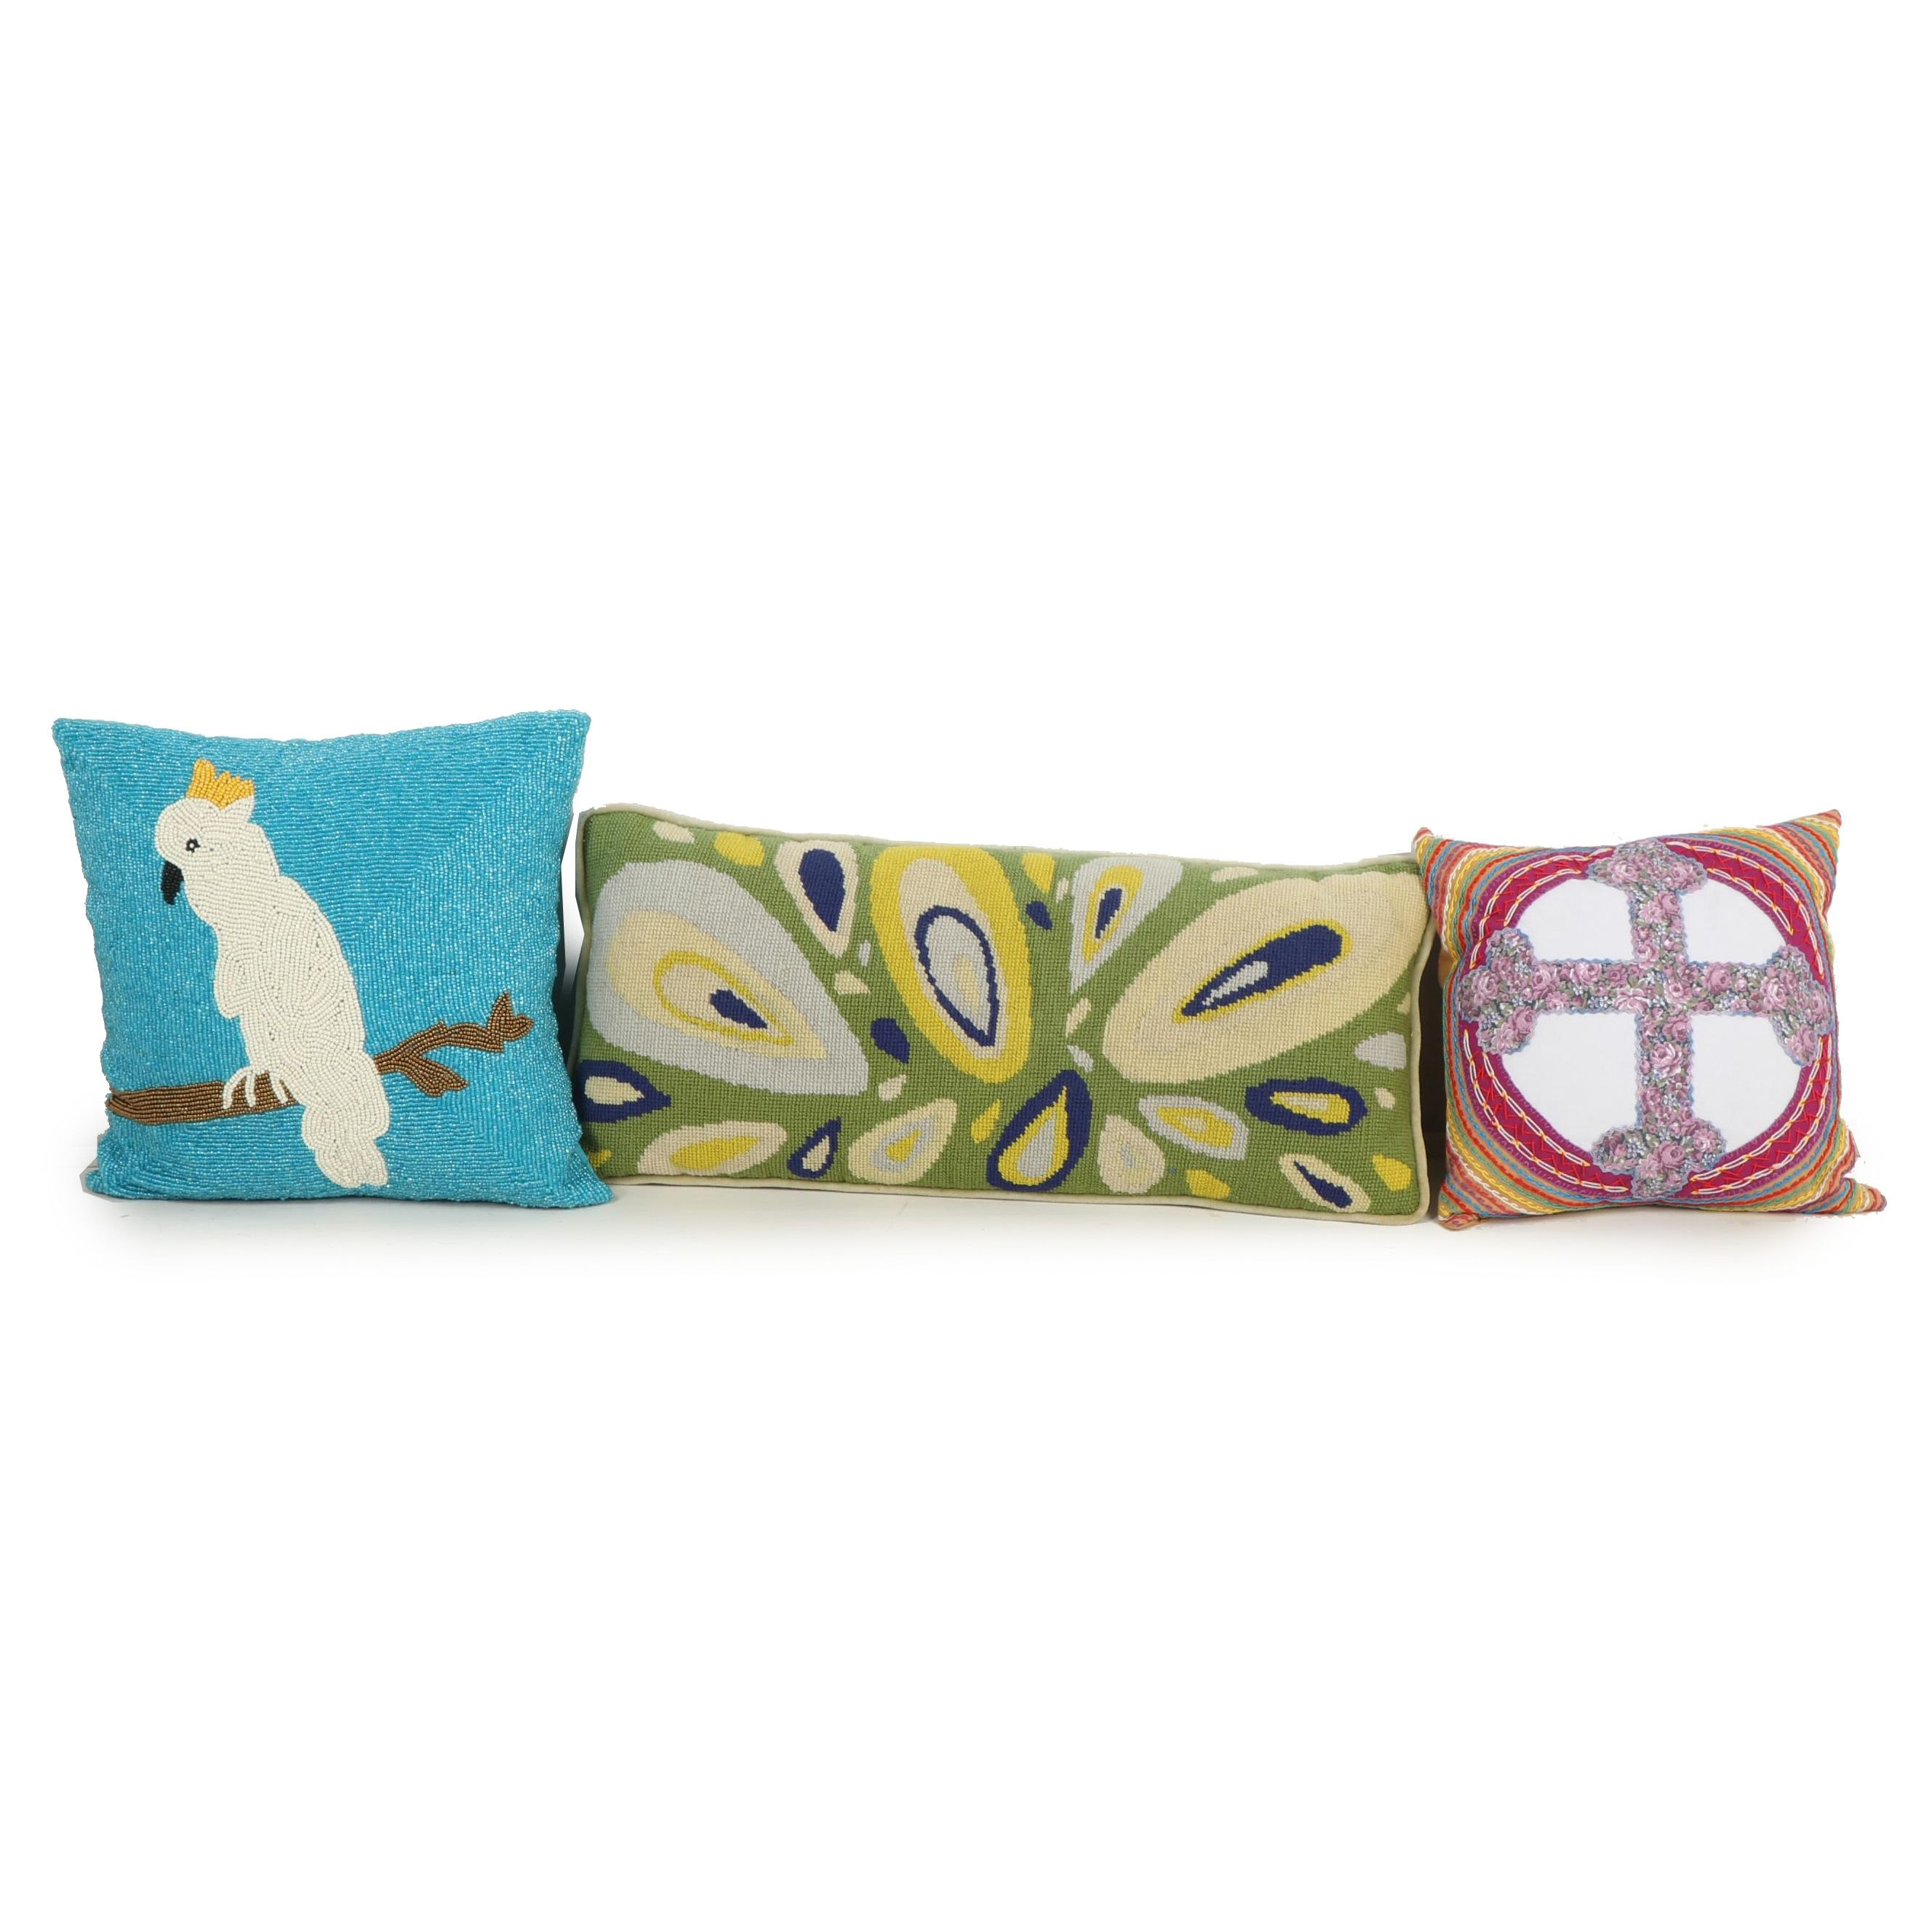 Decorative Beaded, Needlepoint and Appliqué Throw Pillows